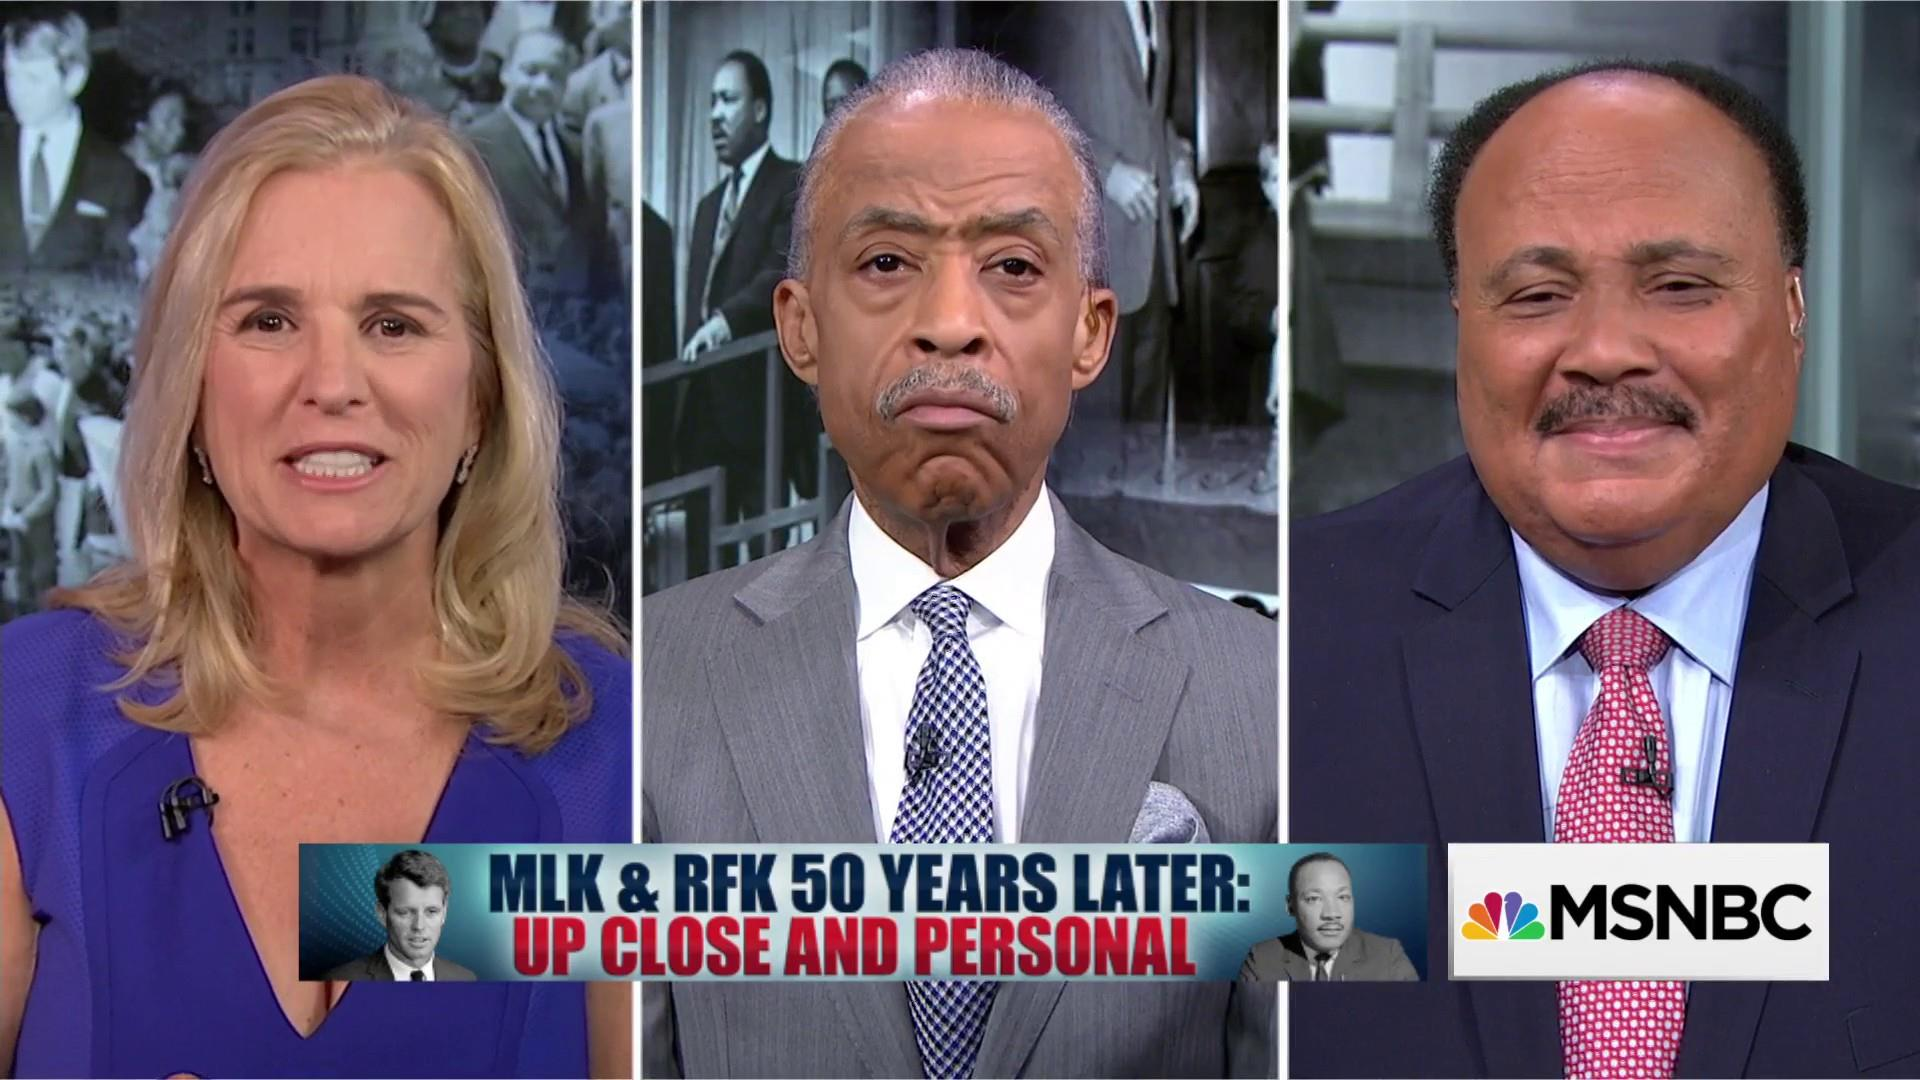 MLK & RFK 50 Years Later: Up Close and Personal